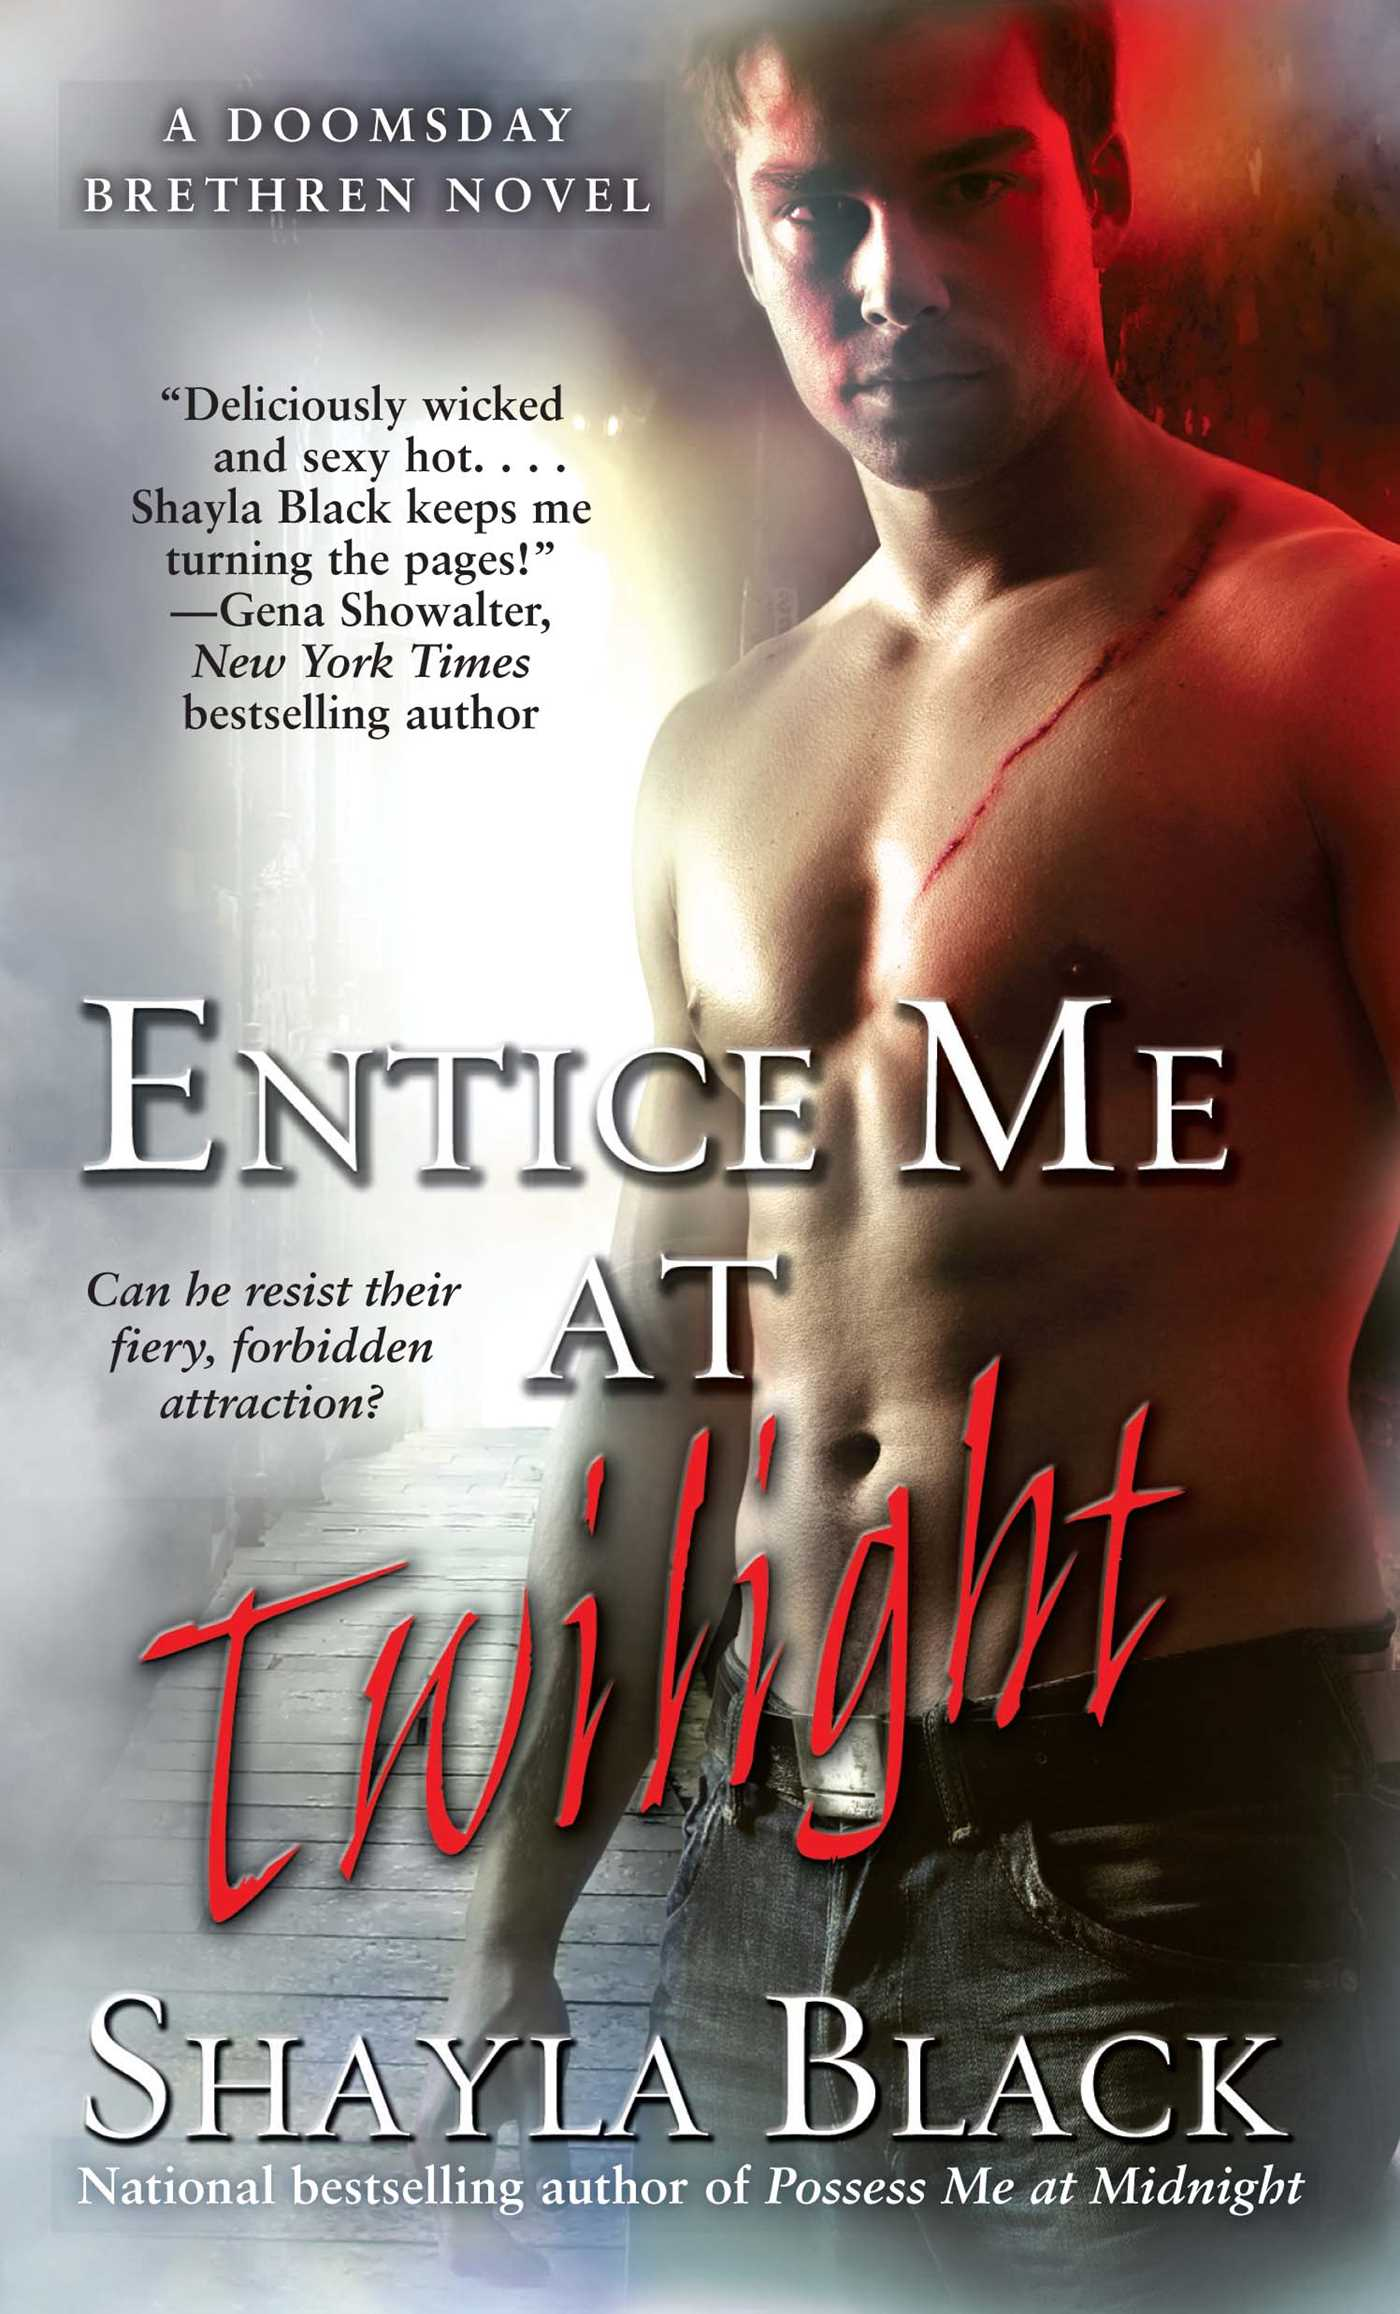 Entice me at twilight 9781439166802 hr